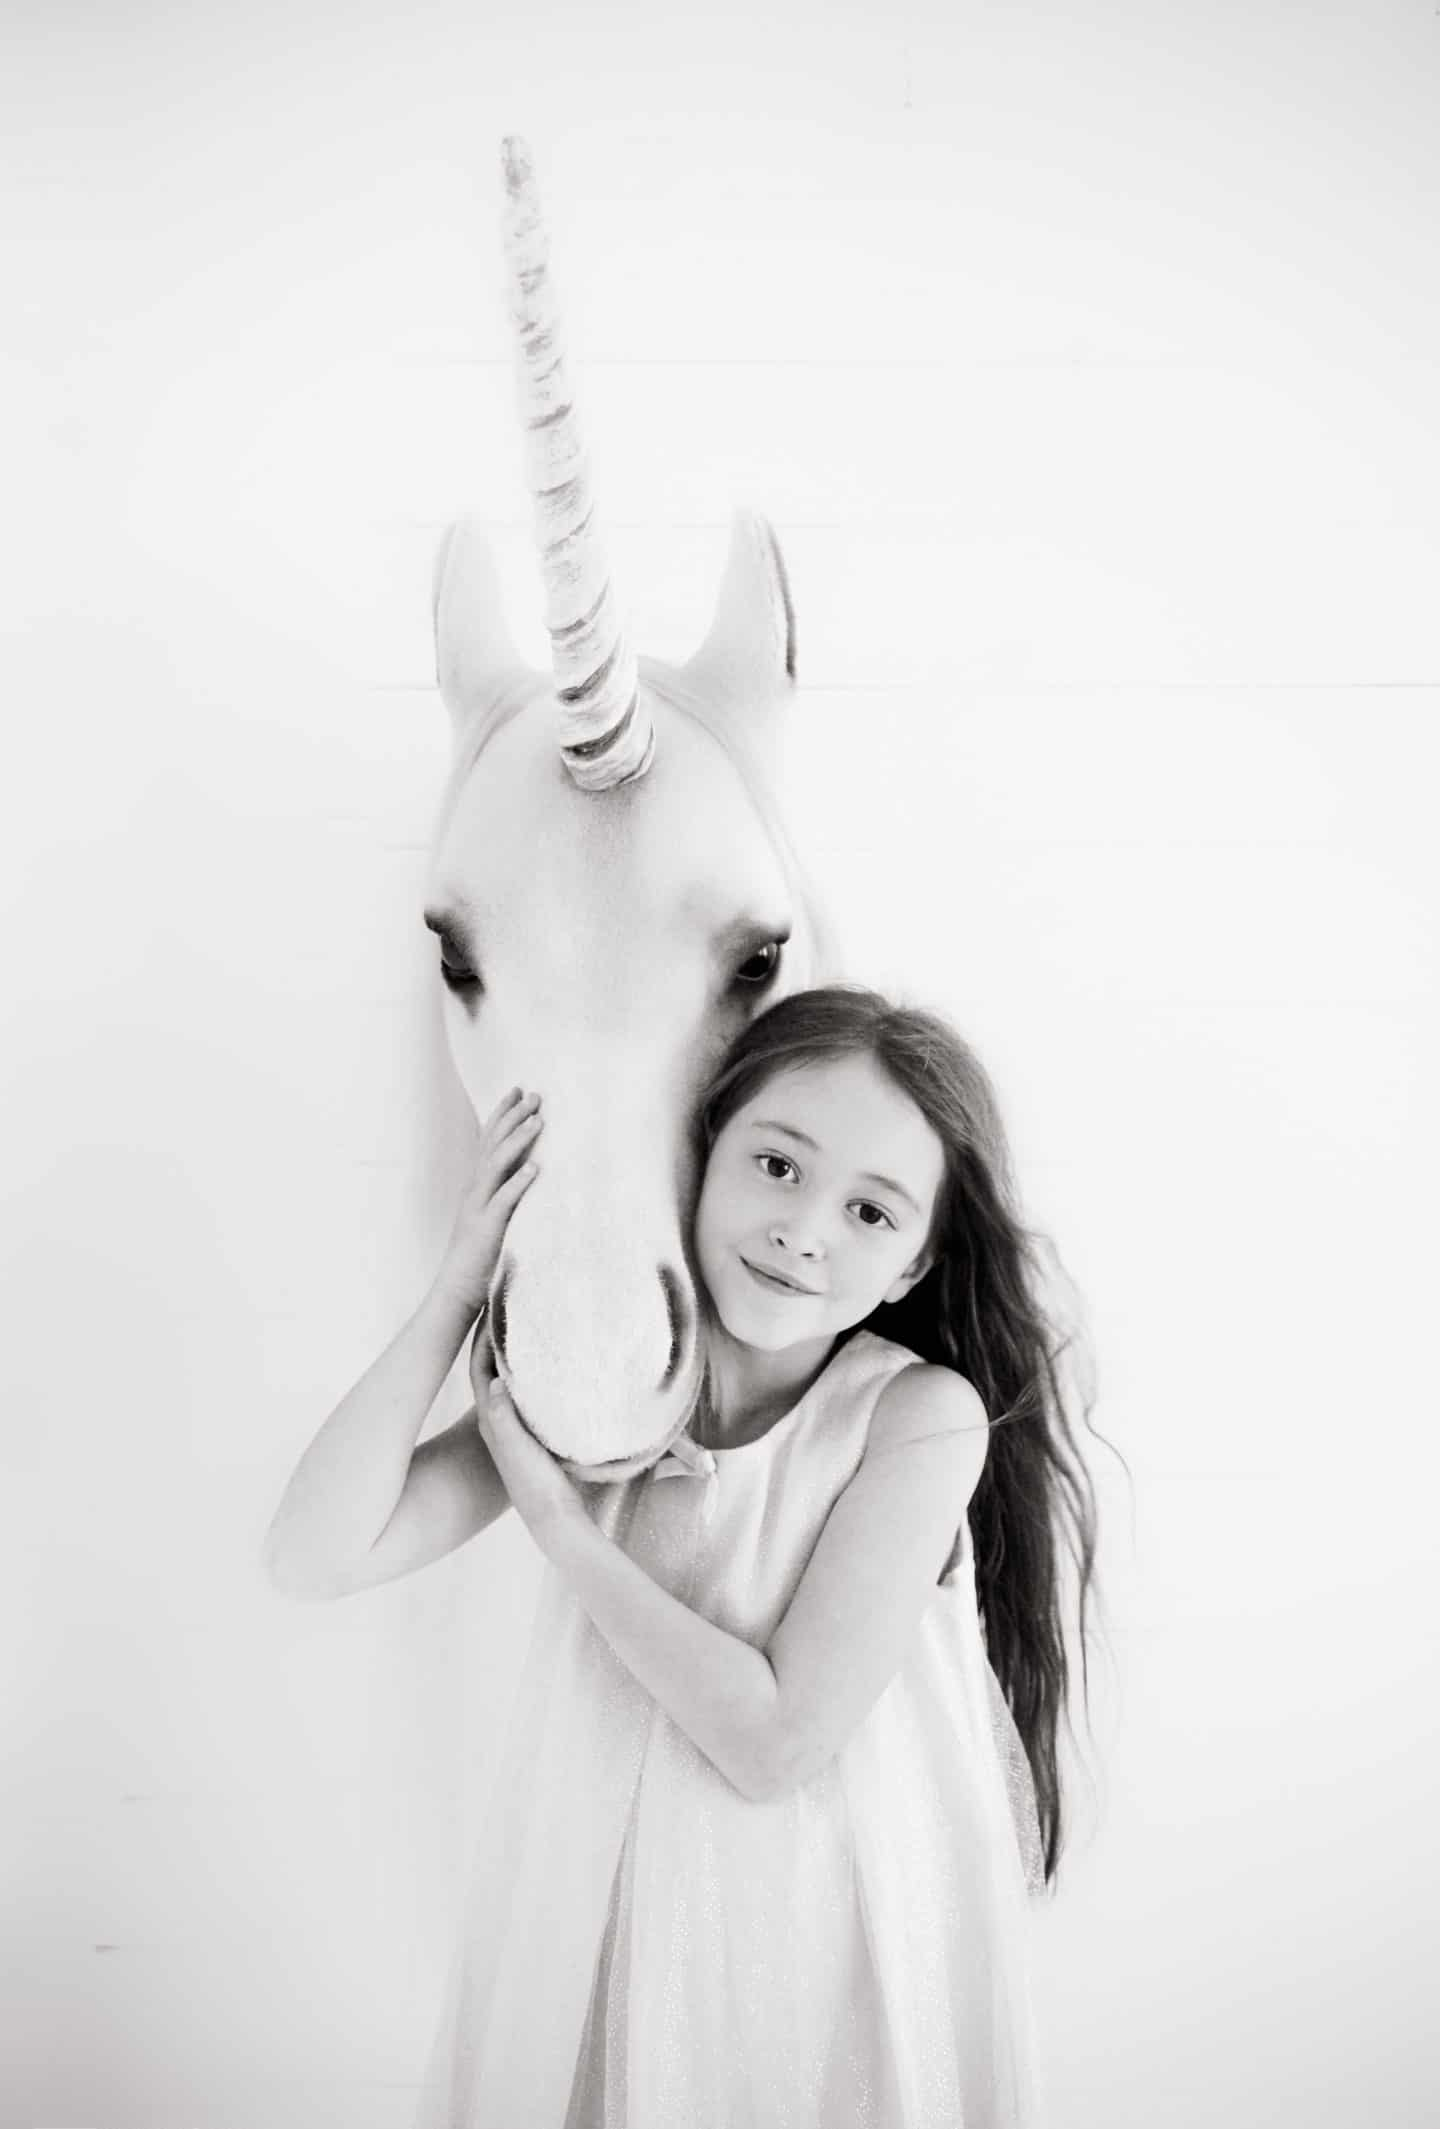 Ava and a unicorn photographed by Shaneen Rosewarne Cox